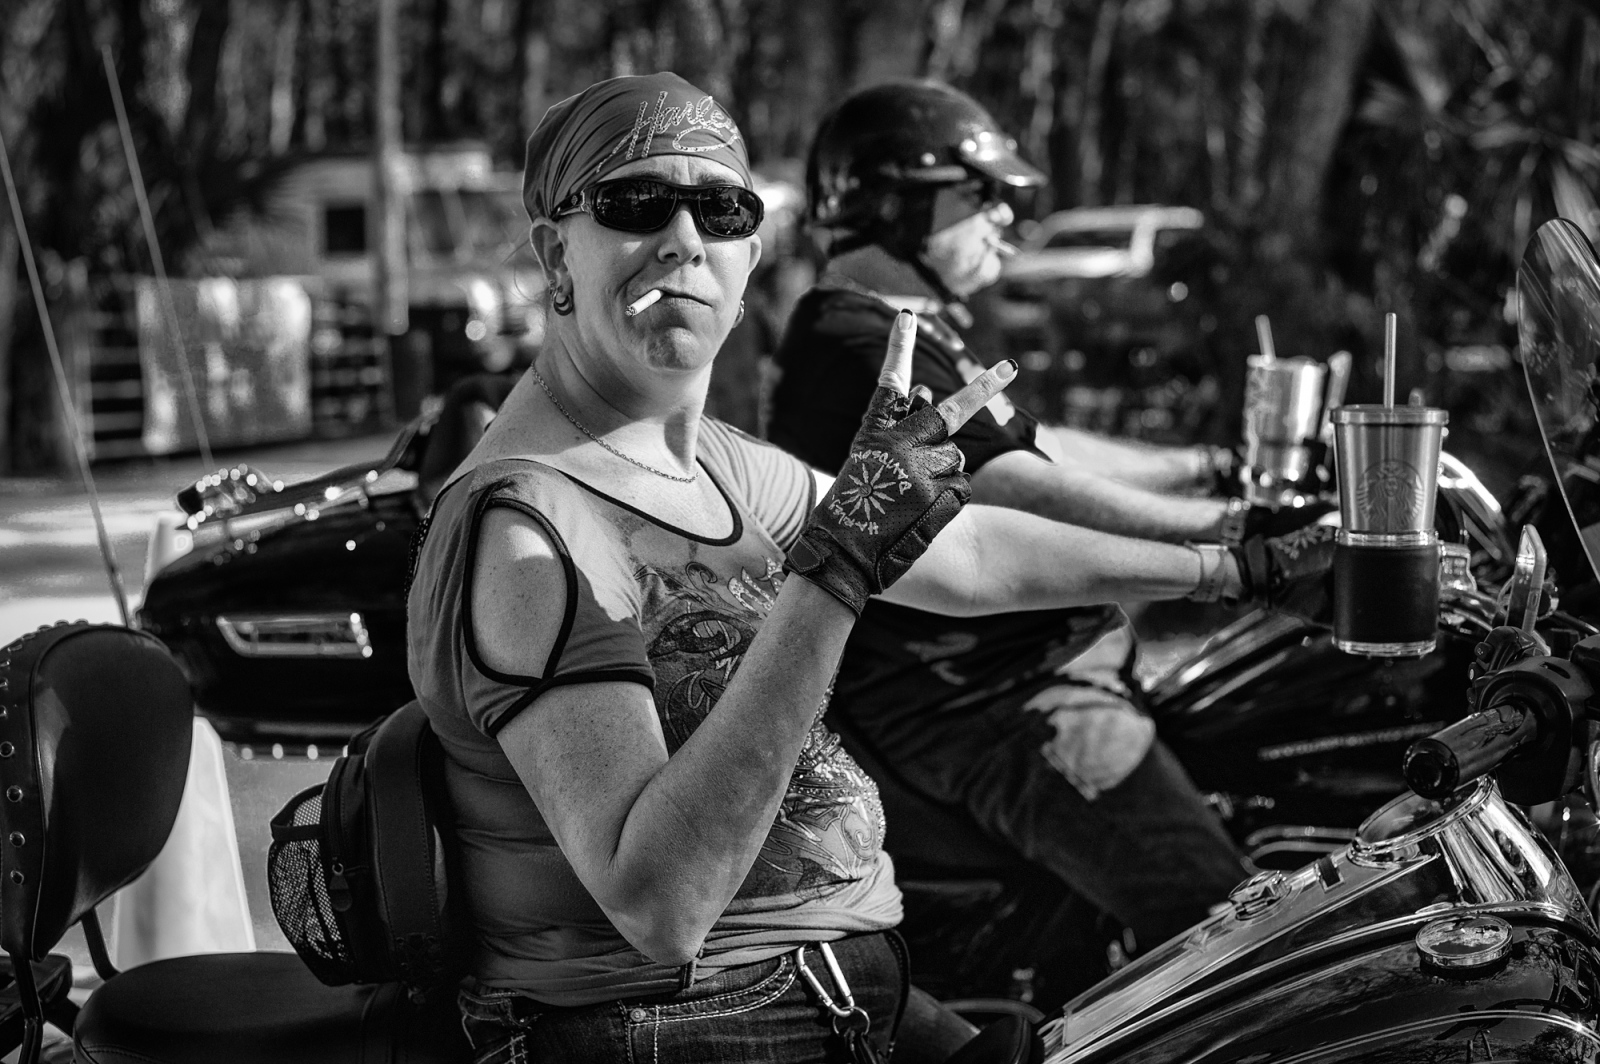 Bikers-Pioneer Trail & SR 415, Florida